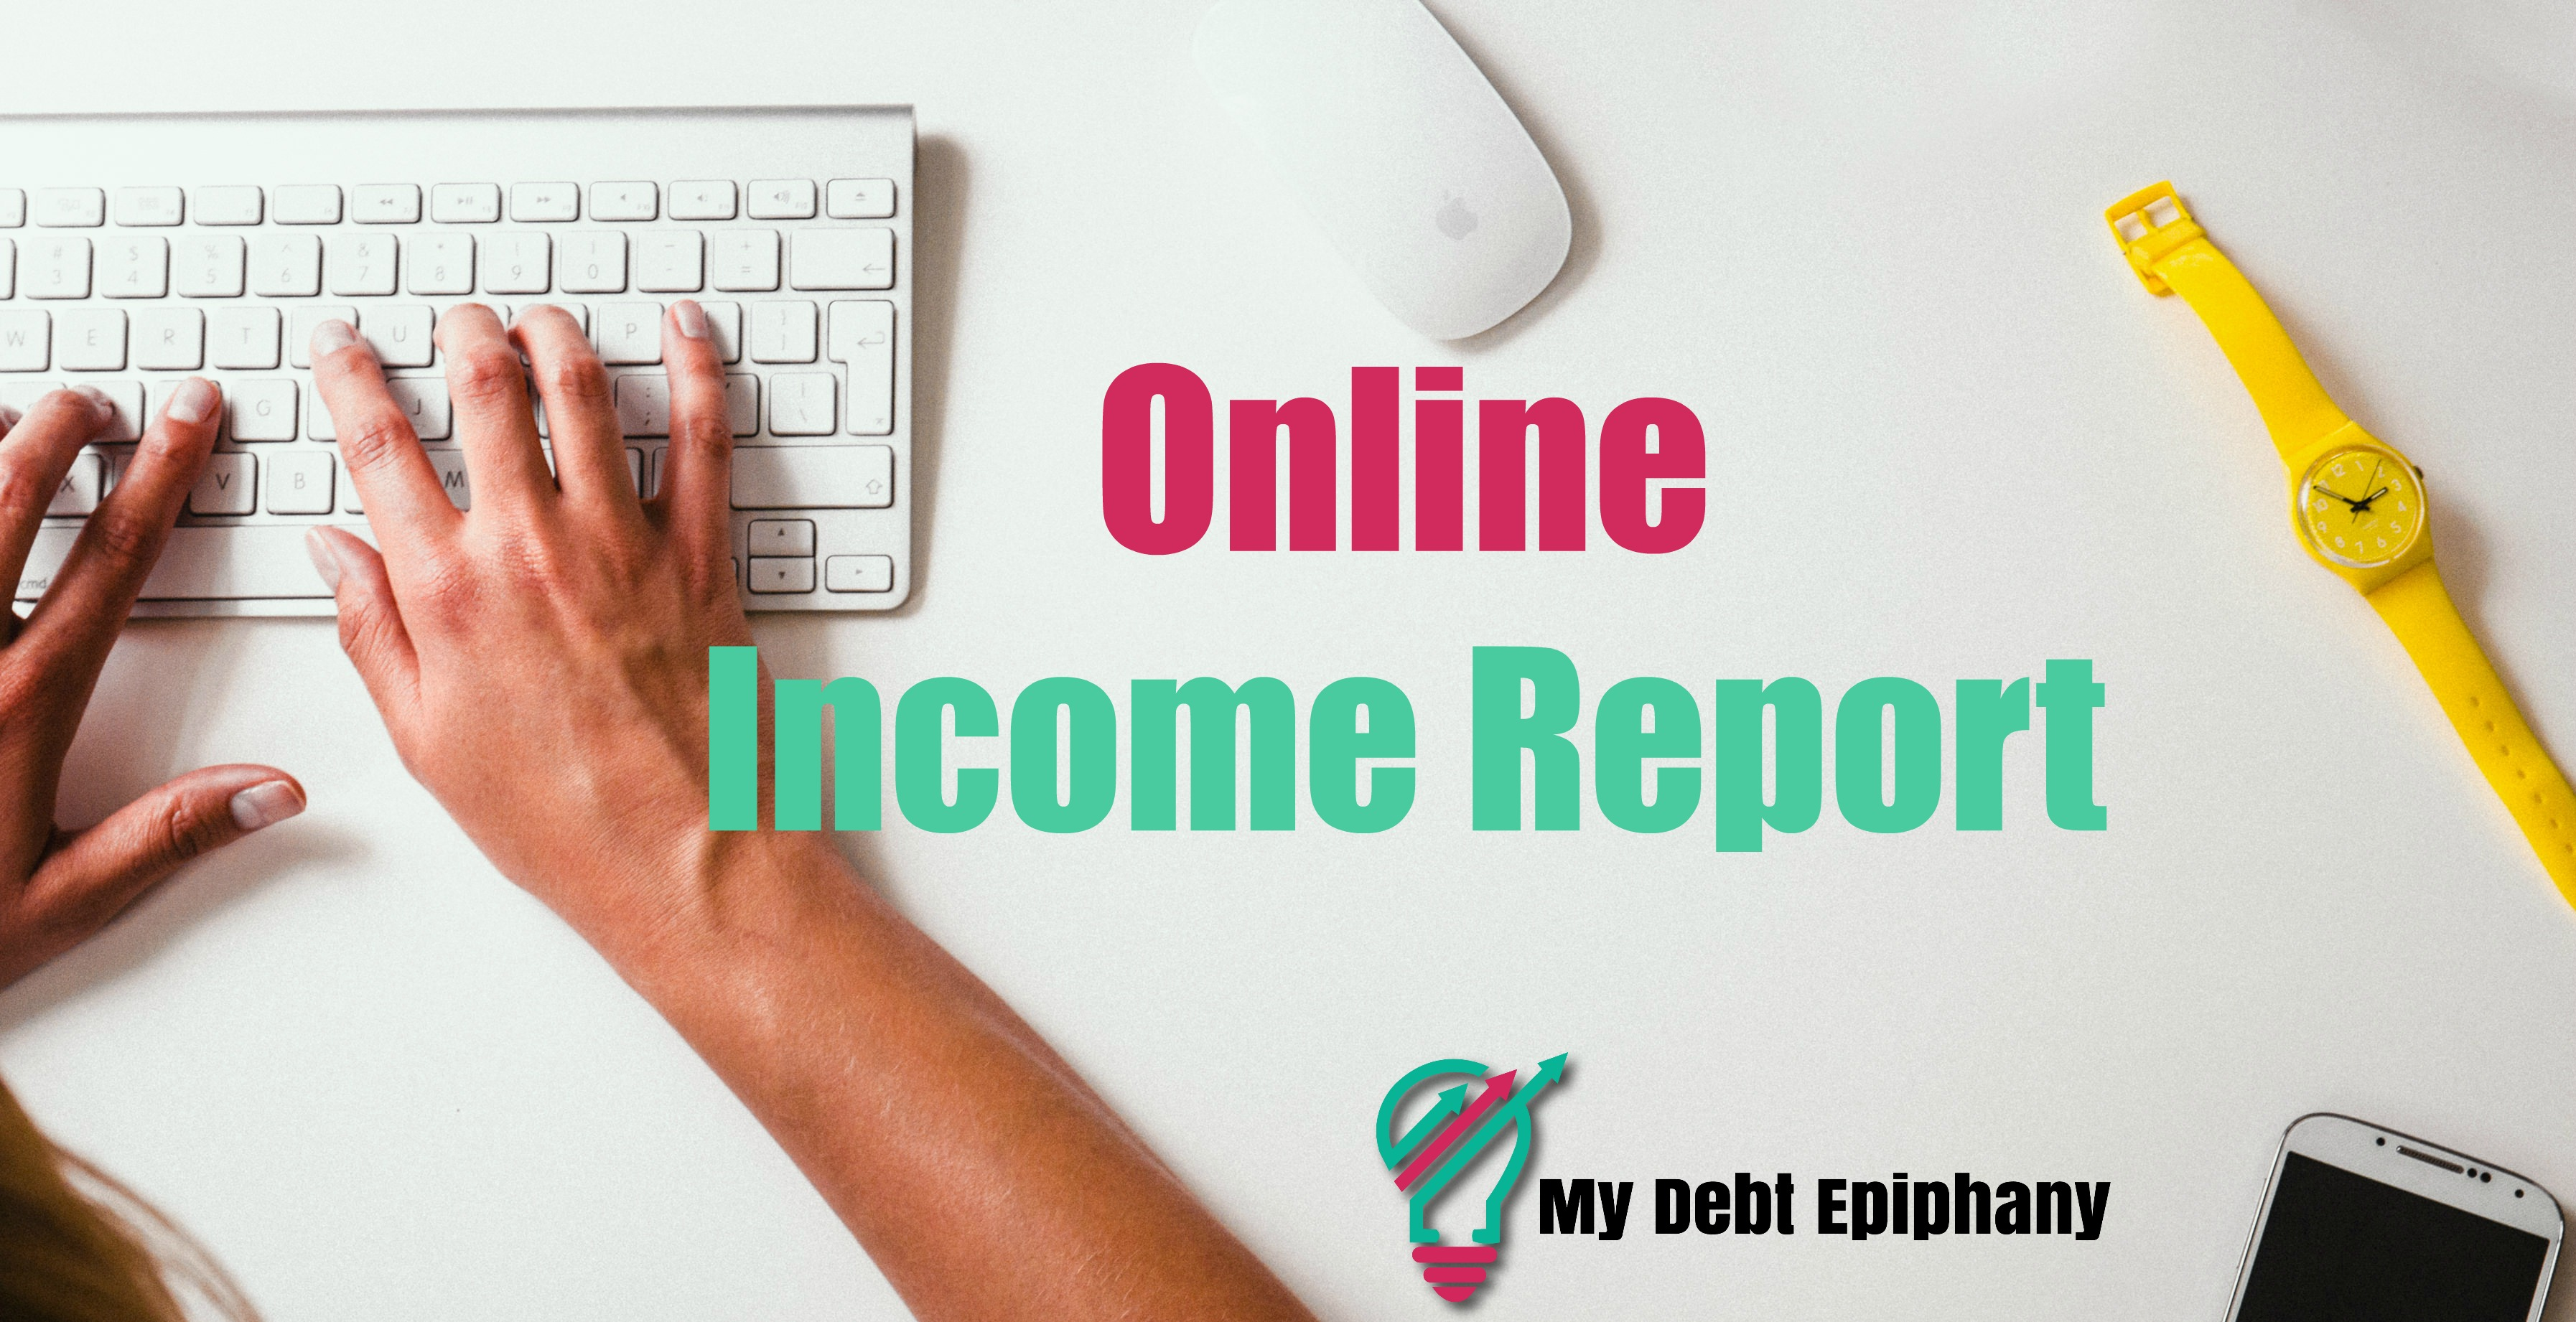 online-income-report-feature